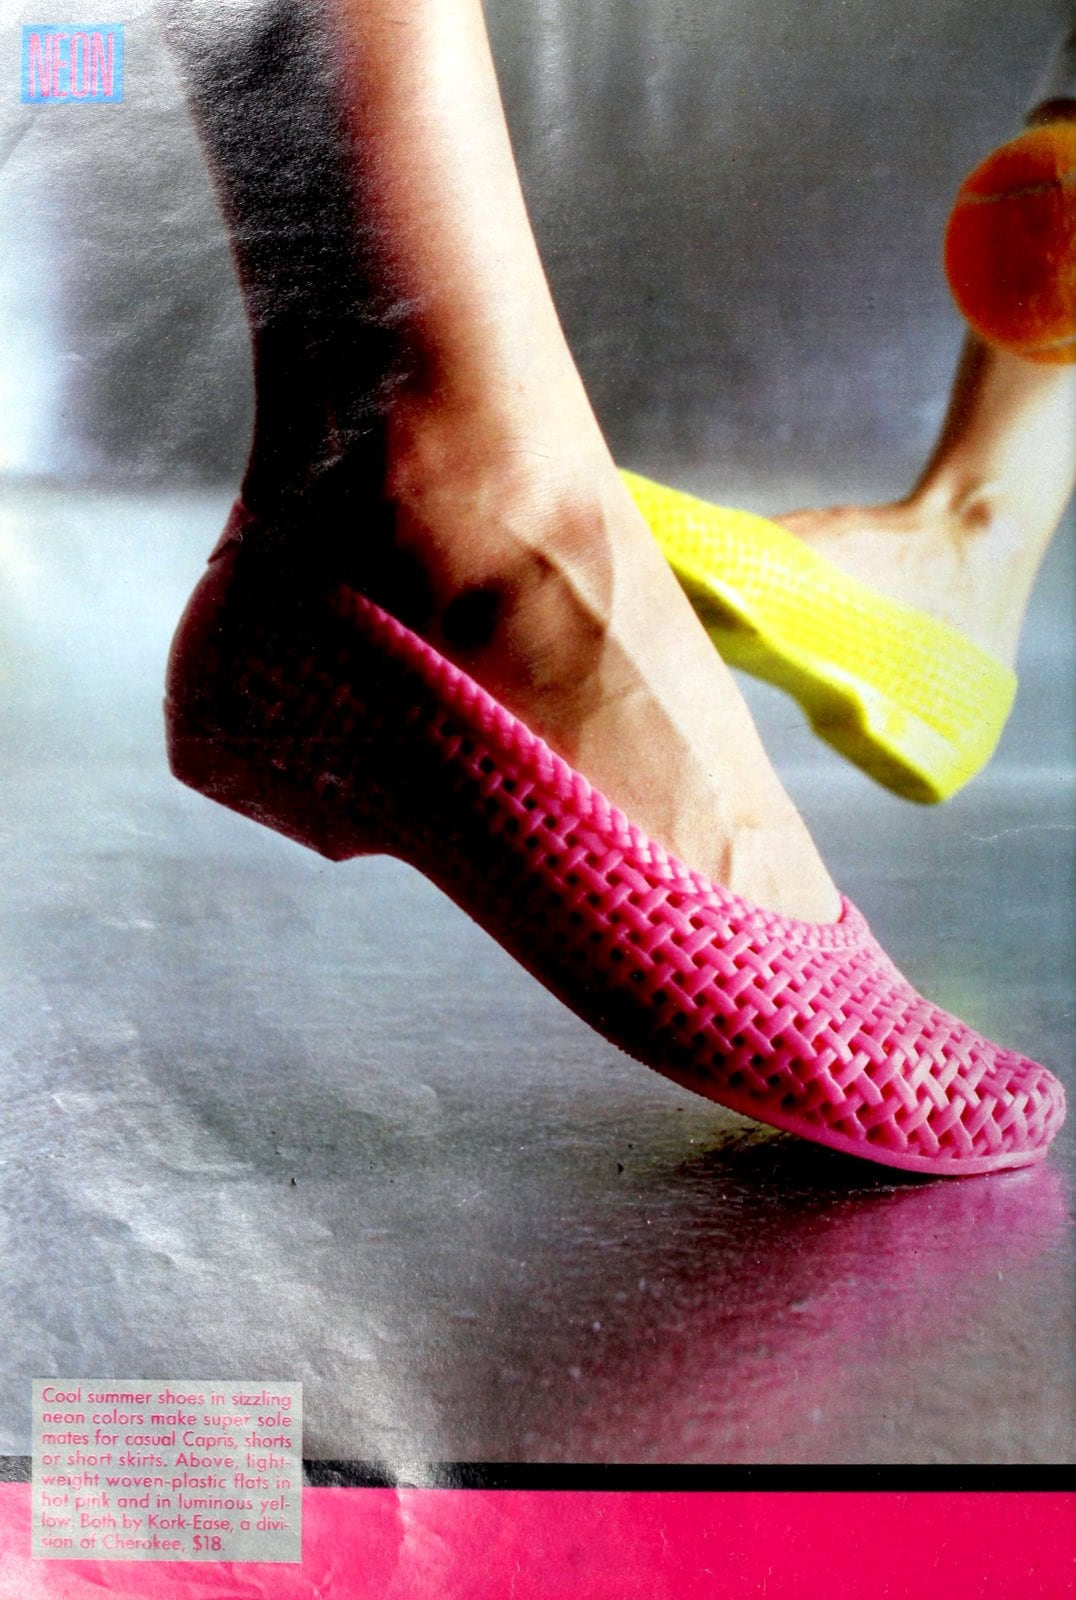 Retro pink plastic shoes from the eighties